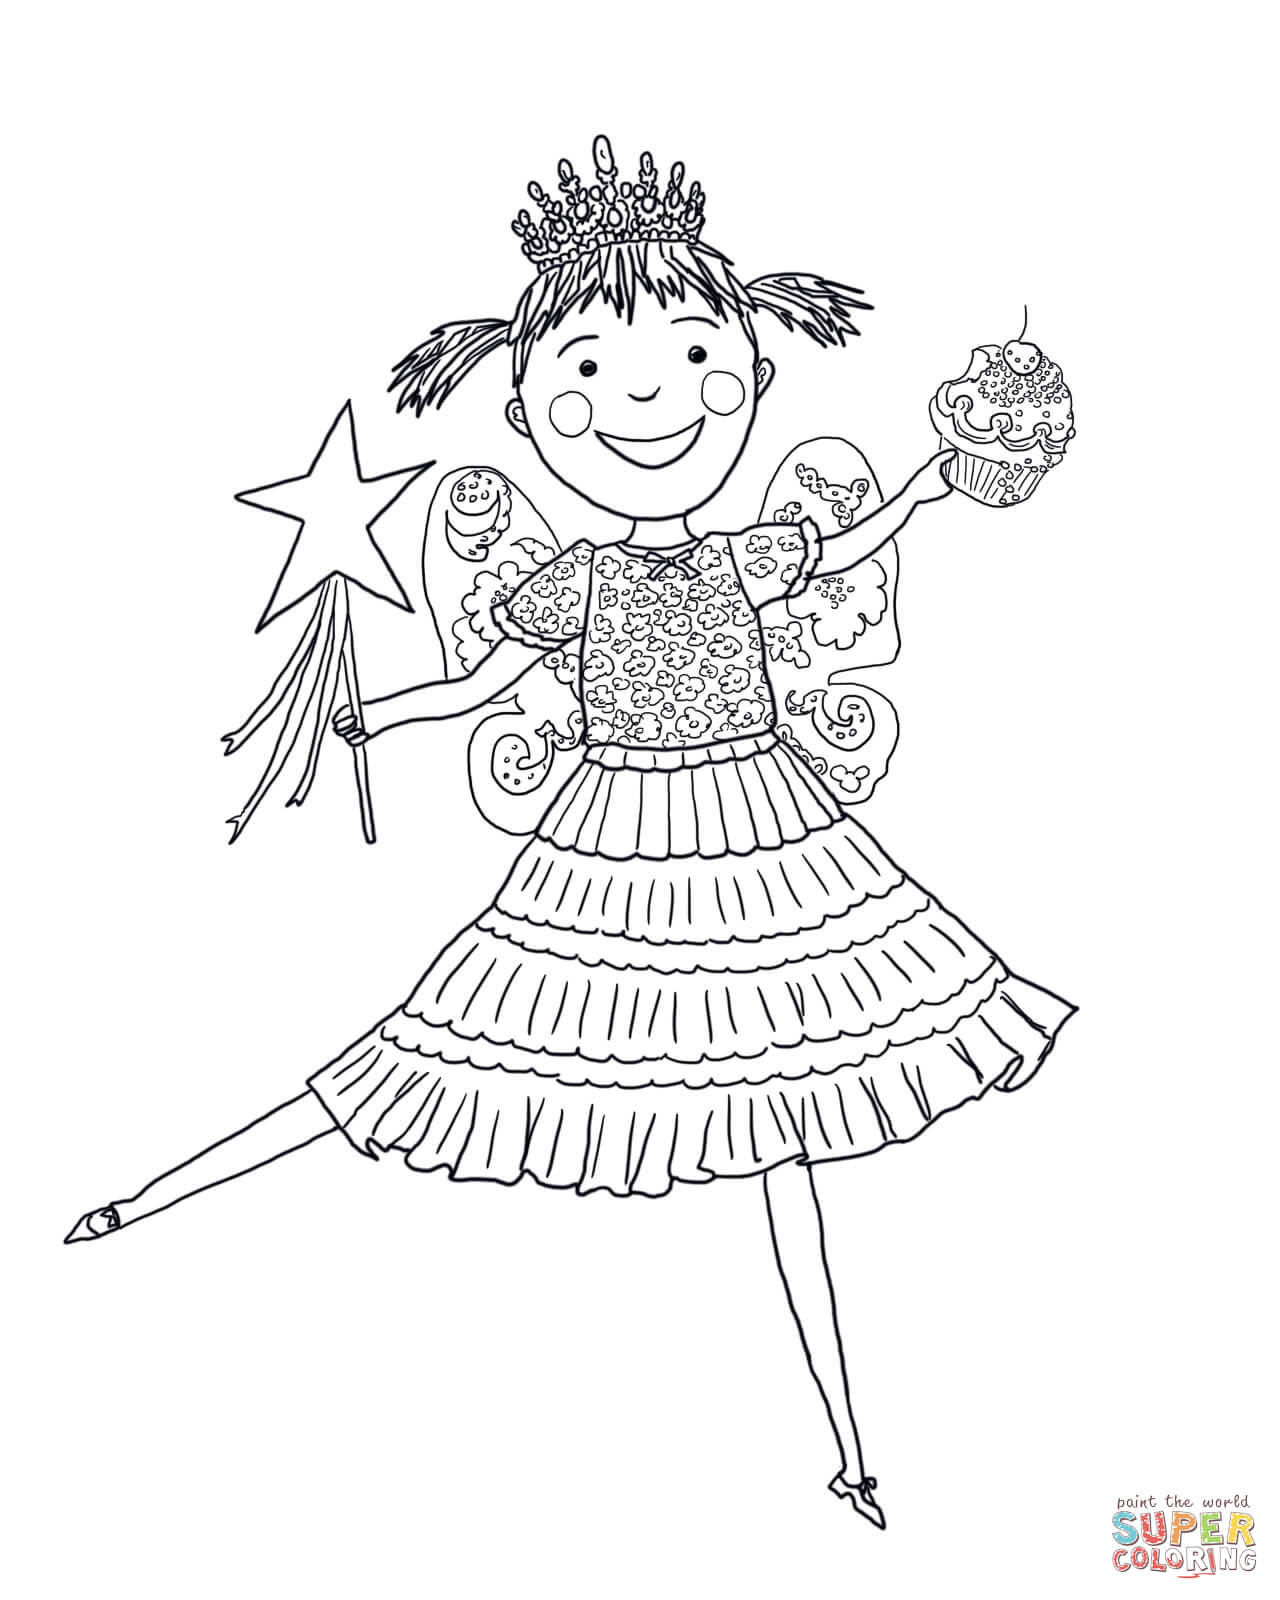 Fuchsia Coloring Page For Kids: Pinkalicious Coloring Pages To Download And Print For Free